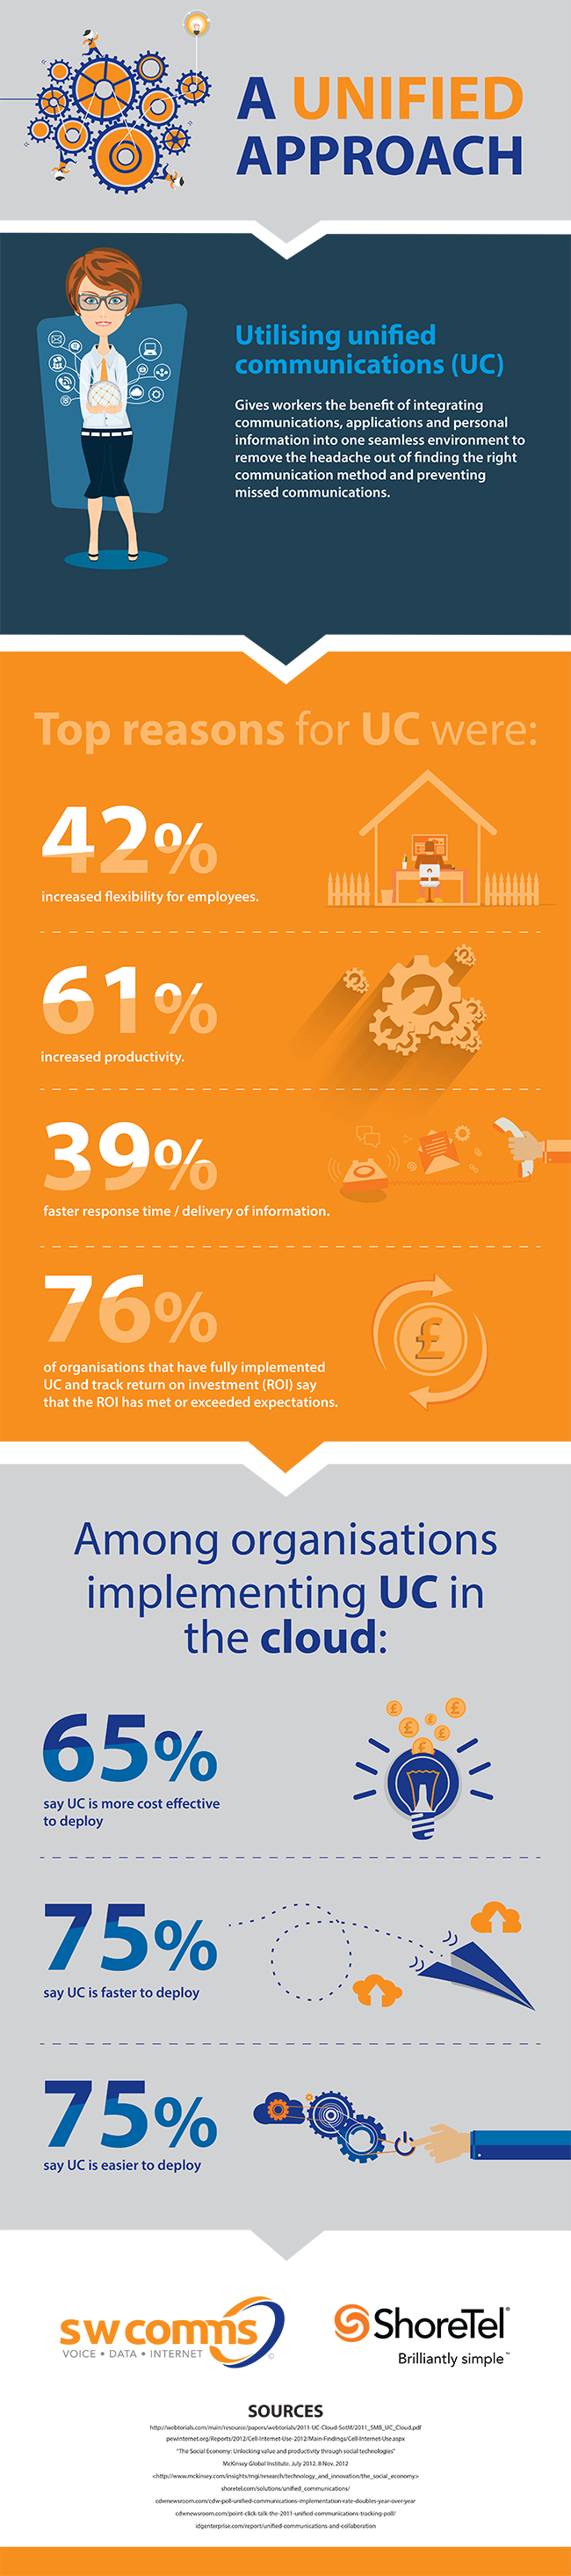 Infographic - A unified approach